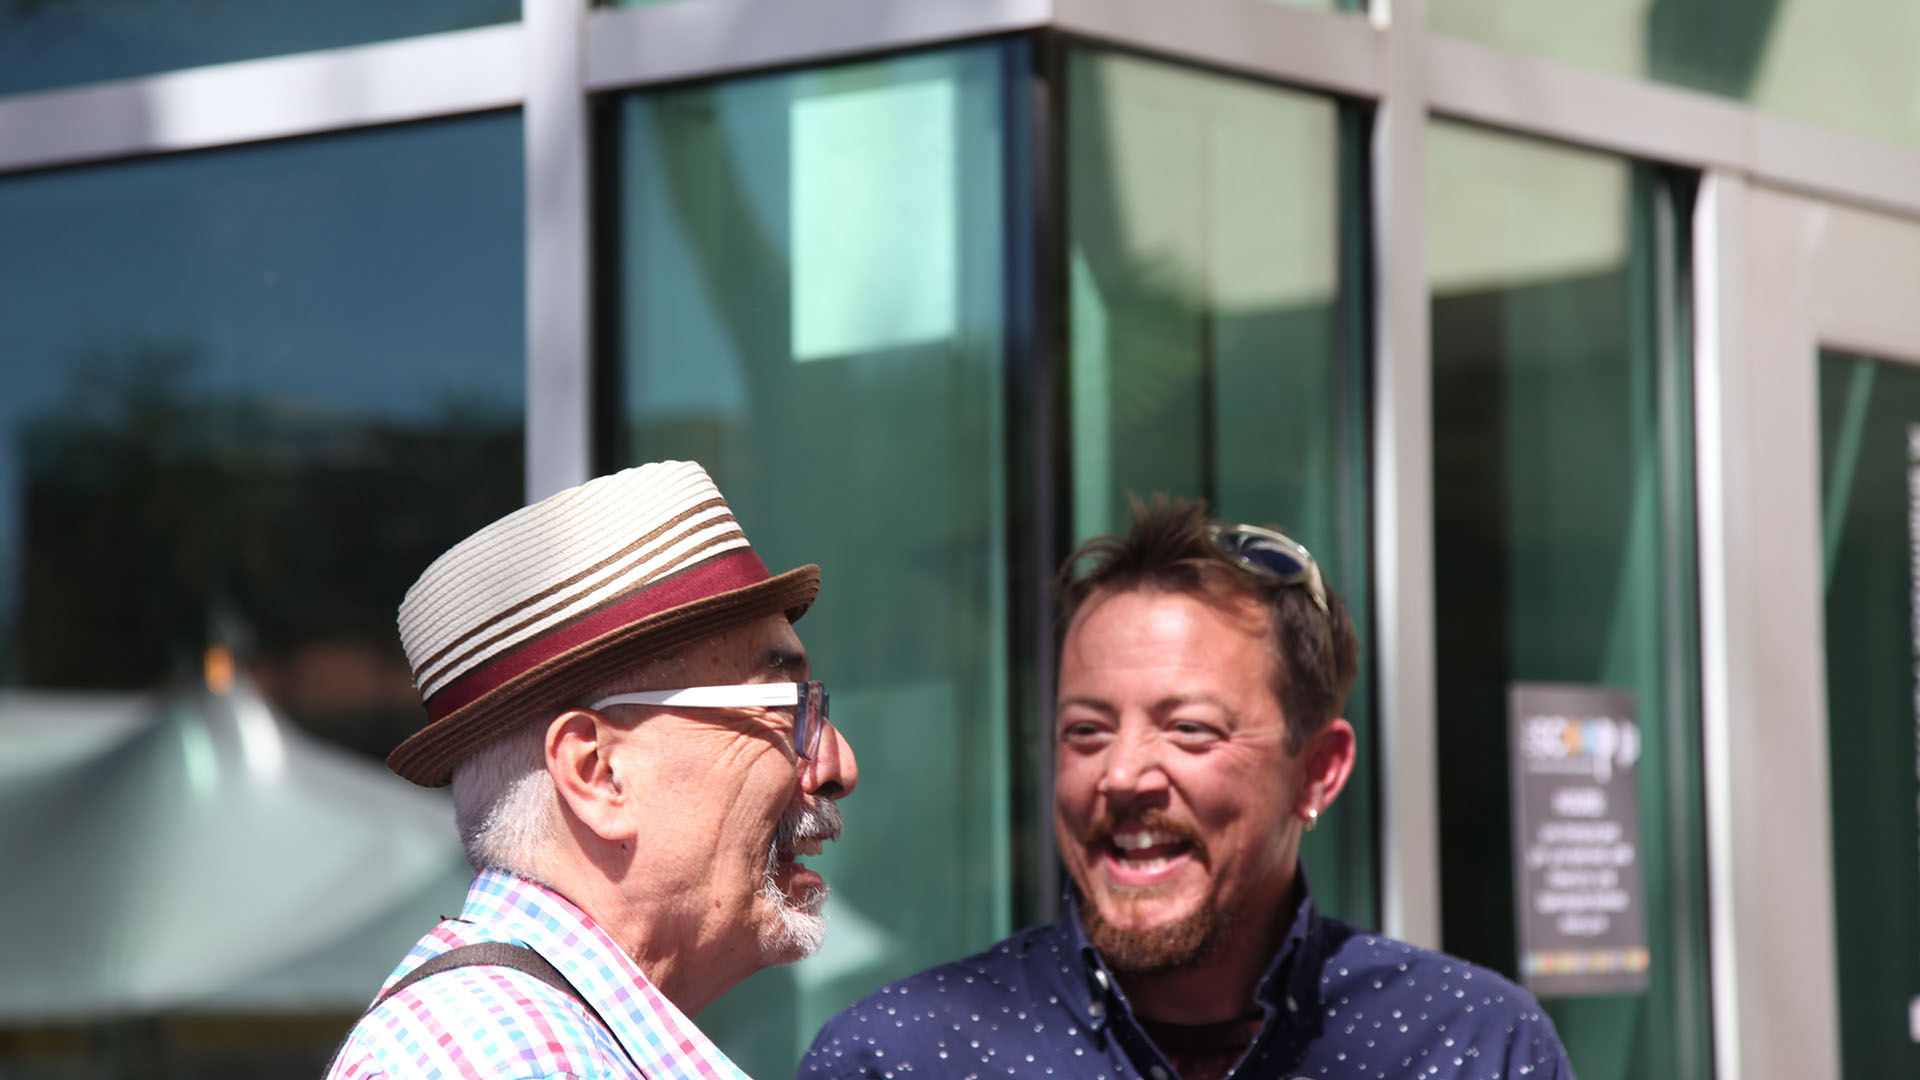 U.S. Poet Laureate Juan Felipe Herrera, left, and Tucson Poet Laureate TC Tolbert, March 10, 2017.